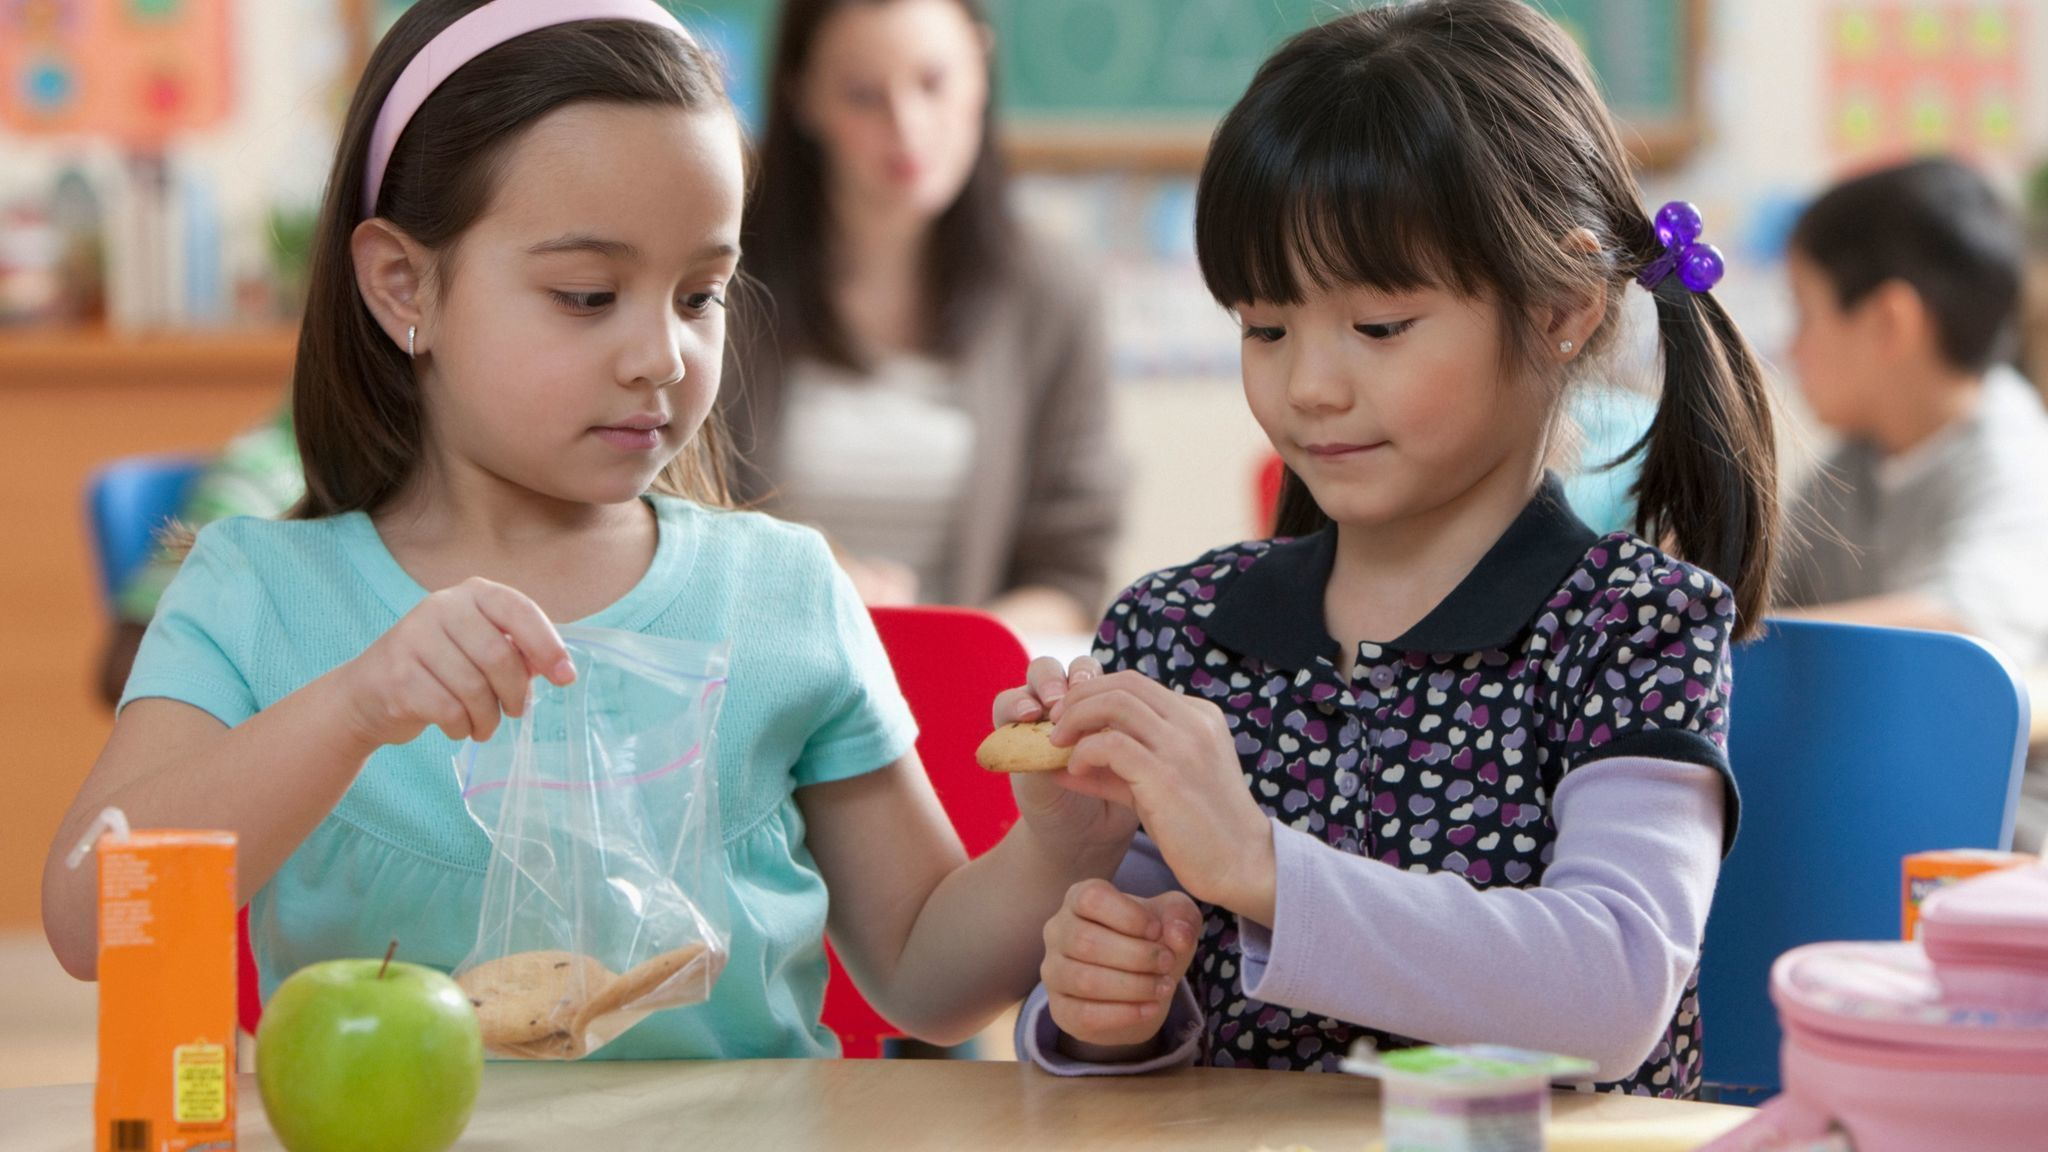 Image result for How to address a child's nutrition at school